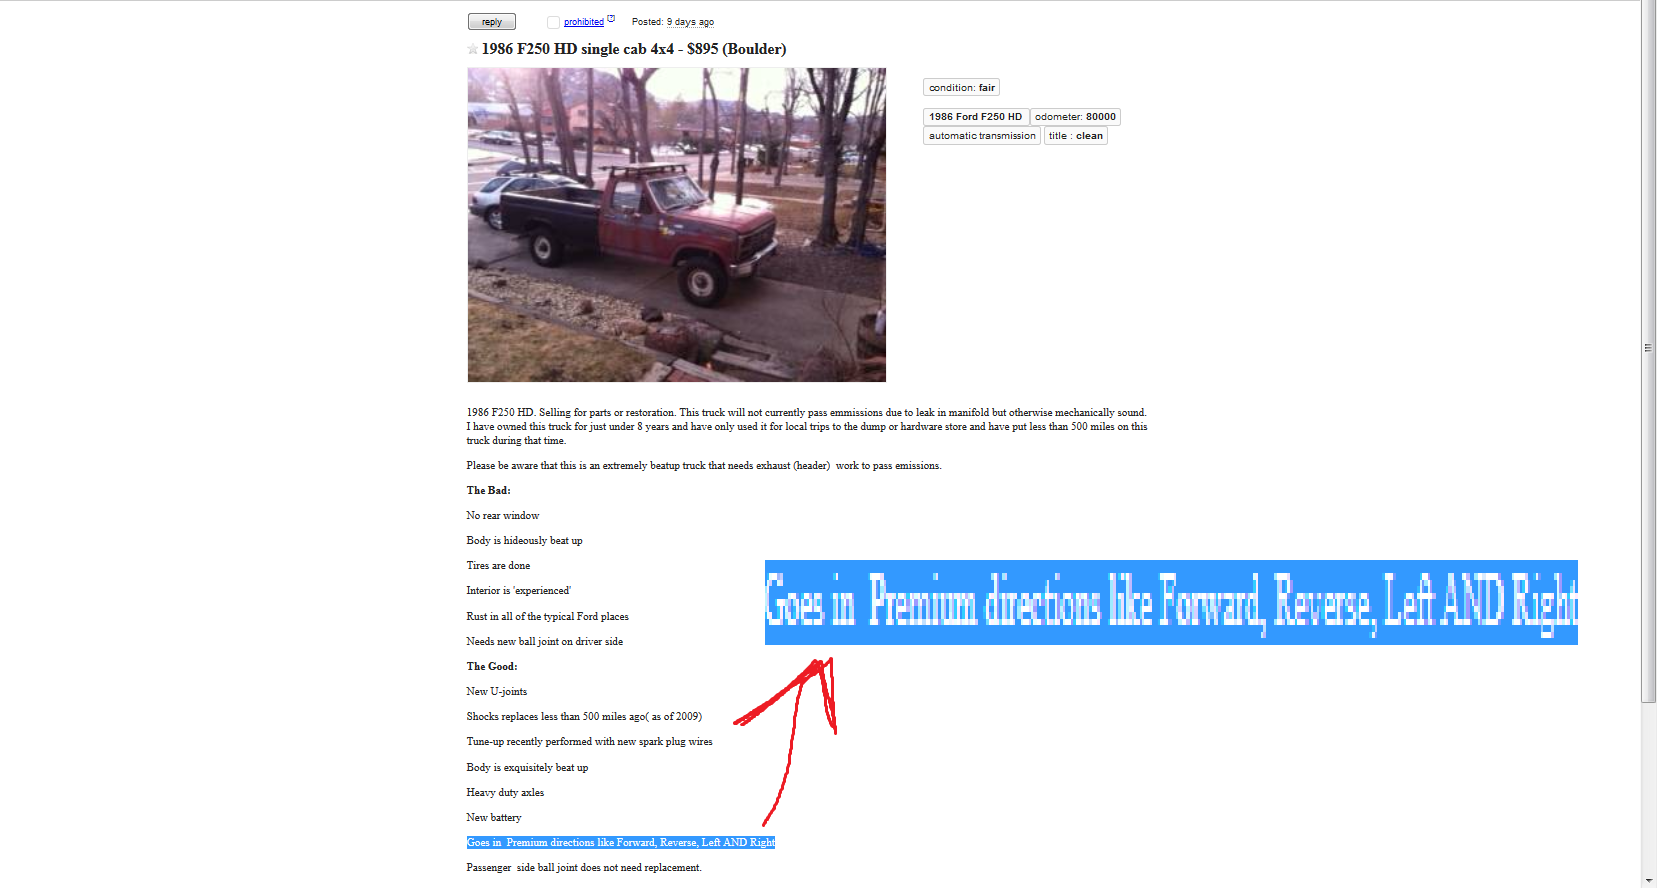 """I heard Craig has a list.. My uncle makes meth.. EID single call: 414 - was (Boulder) t: condition: fair Ford HO . title 2 clean Tucked, New battery. """"Shocks replaced 500 miles ago (since 2009)"""" """"I drove this truck 500 miles since I owned it (8 years)"""" I think your uncle is using his own s"""